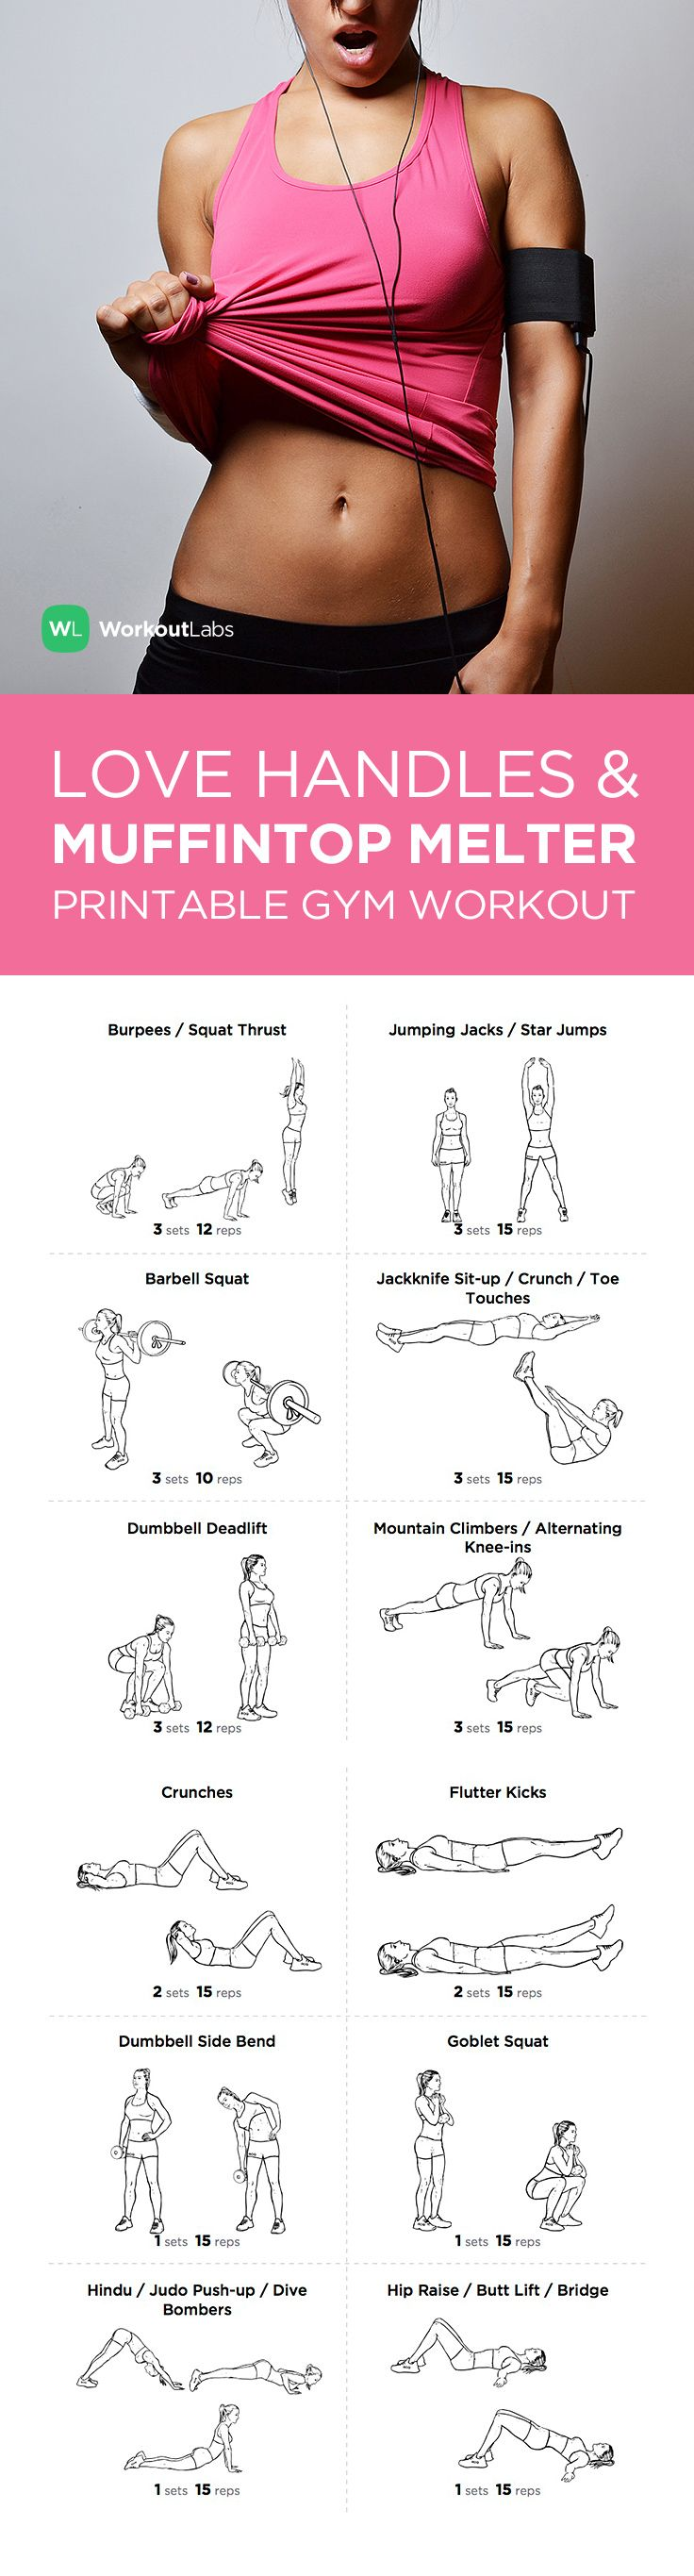 Visit http://wlabs.me/1sS9gnH for a FREE PDF of this Love Handles and Muffin Top Melter visual illustrated workout! #fitness